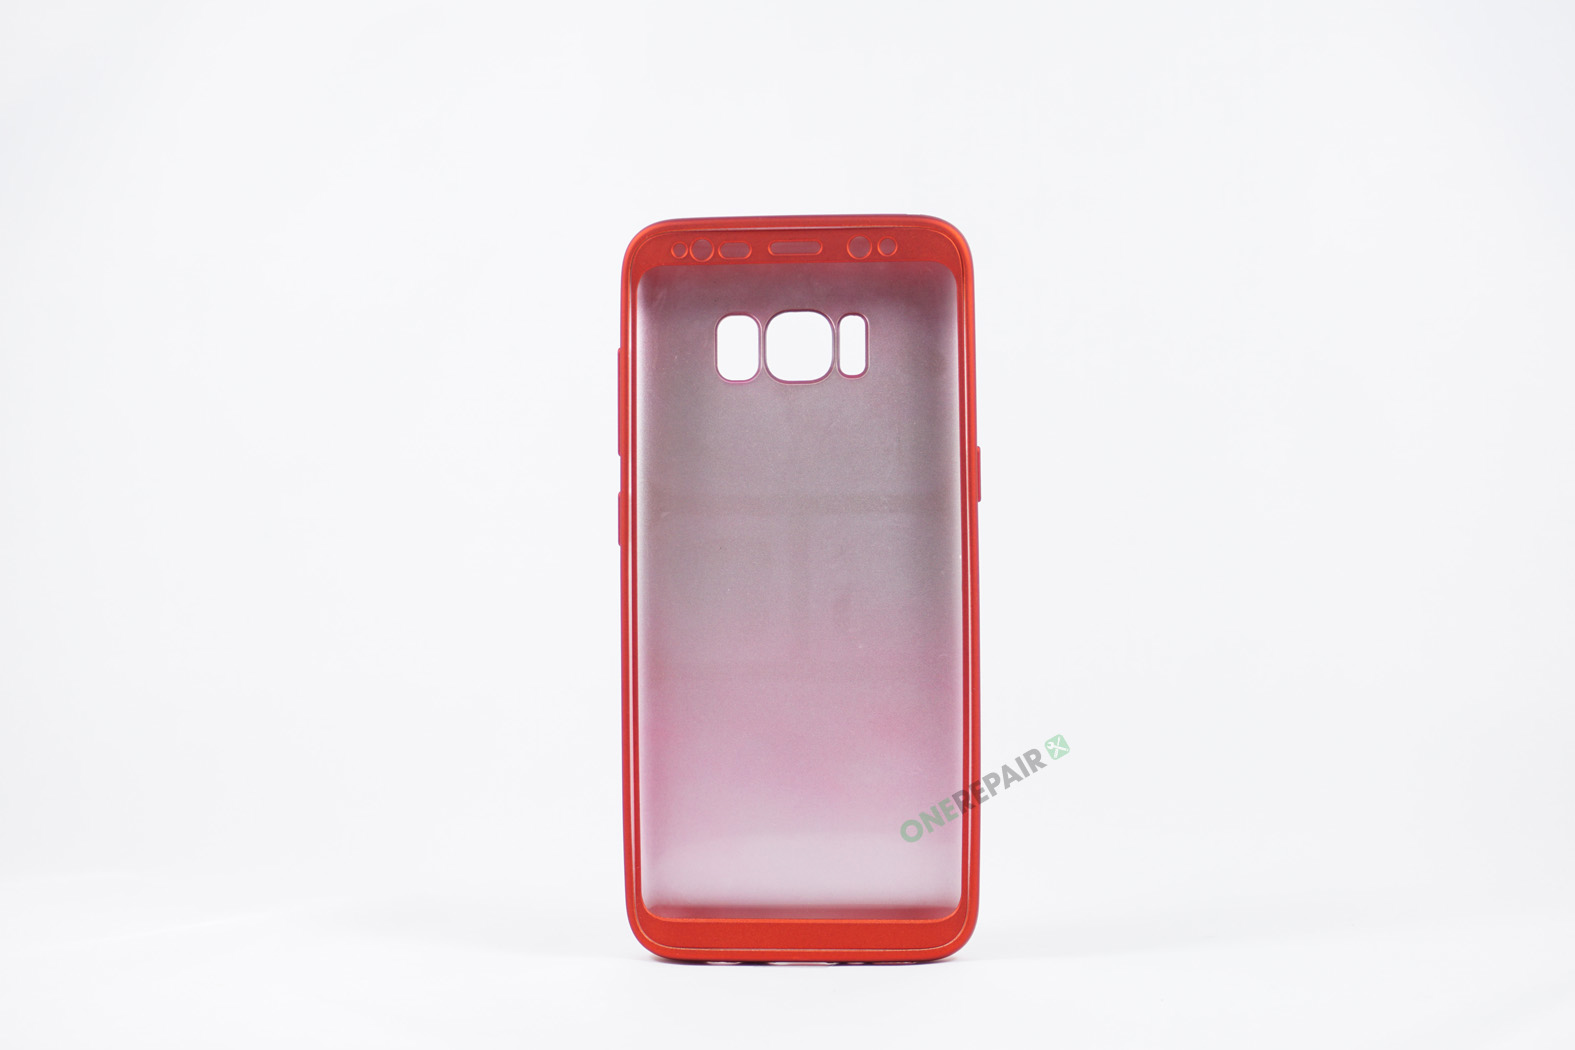 350733_Samsung_S8_2_lags_Bagcover_Cover_Roed_OneRepair_WM_00003